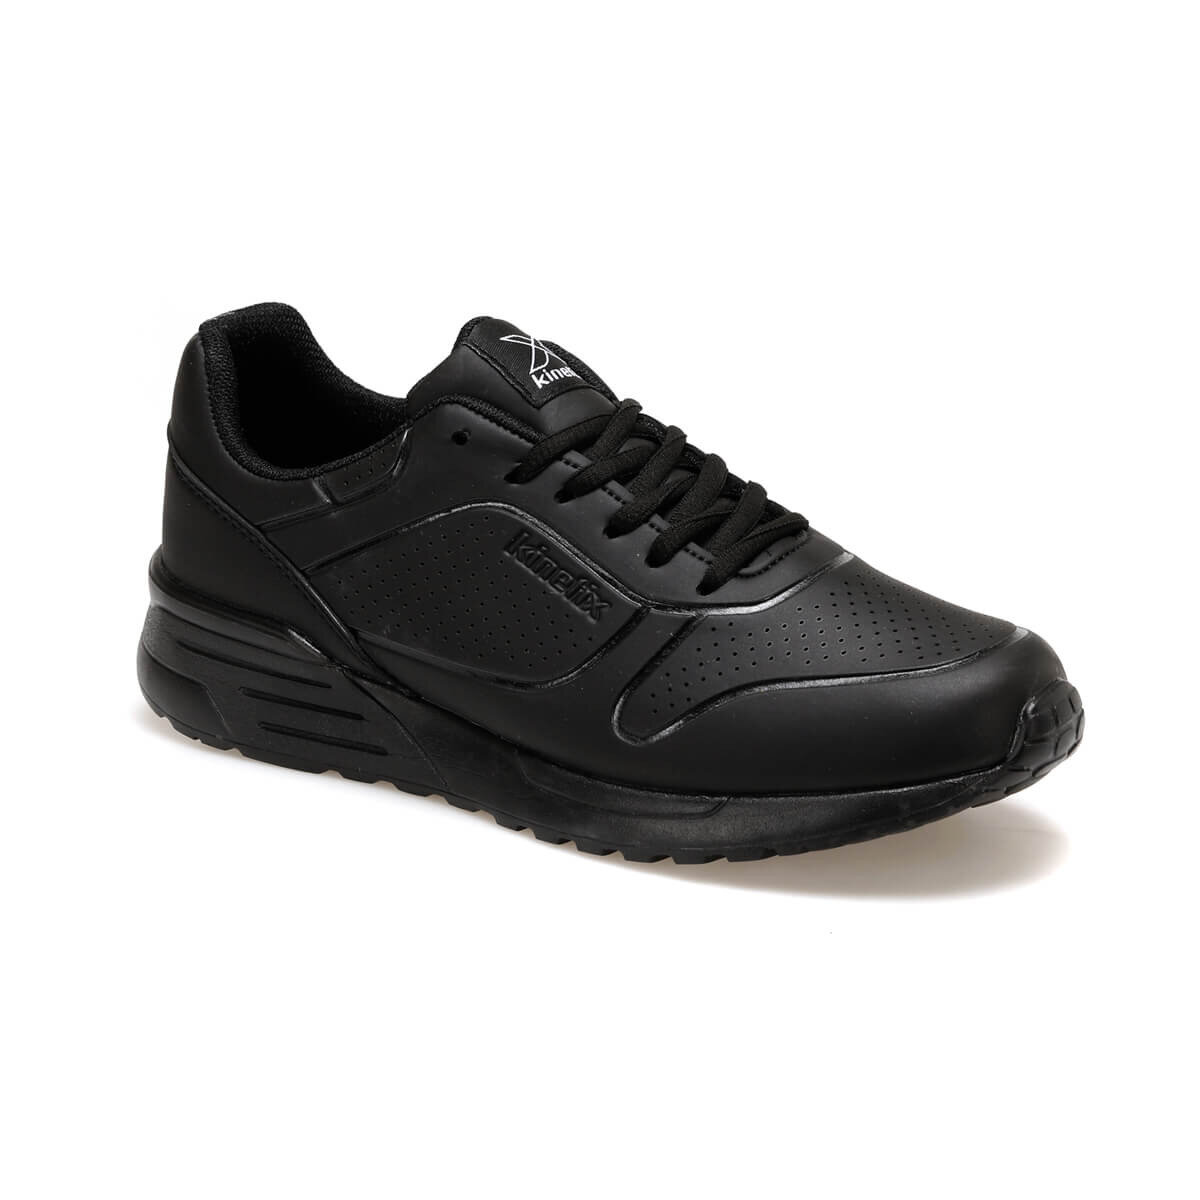 FLO NERTON W 9PR Black Women 'S Sneaker Shoes KINETIX